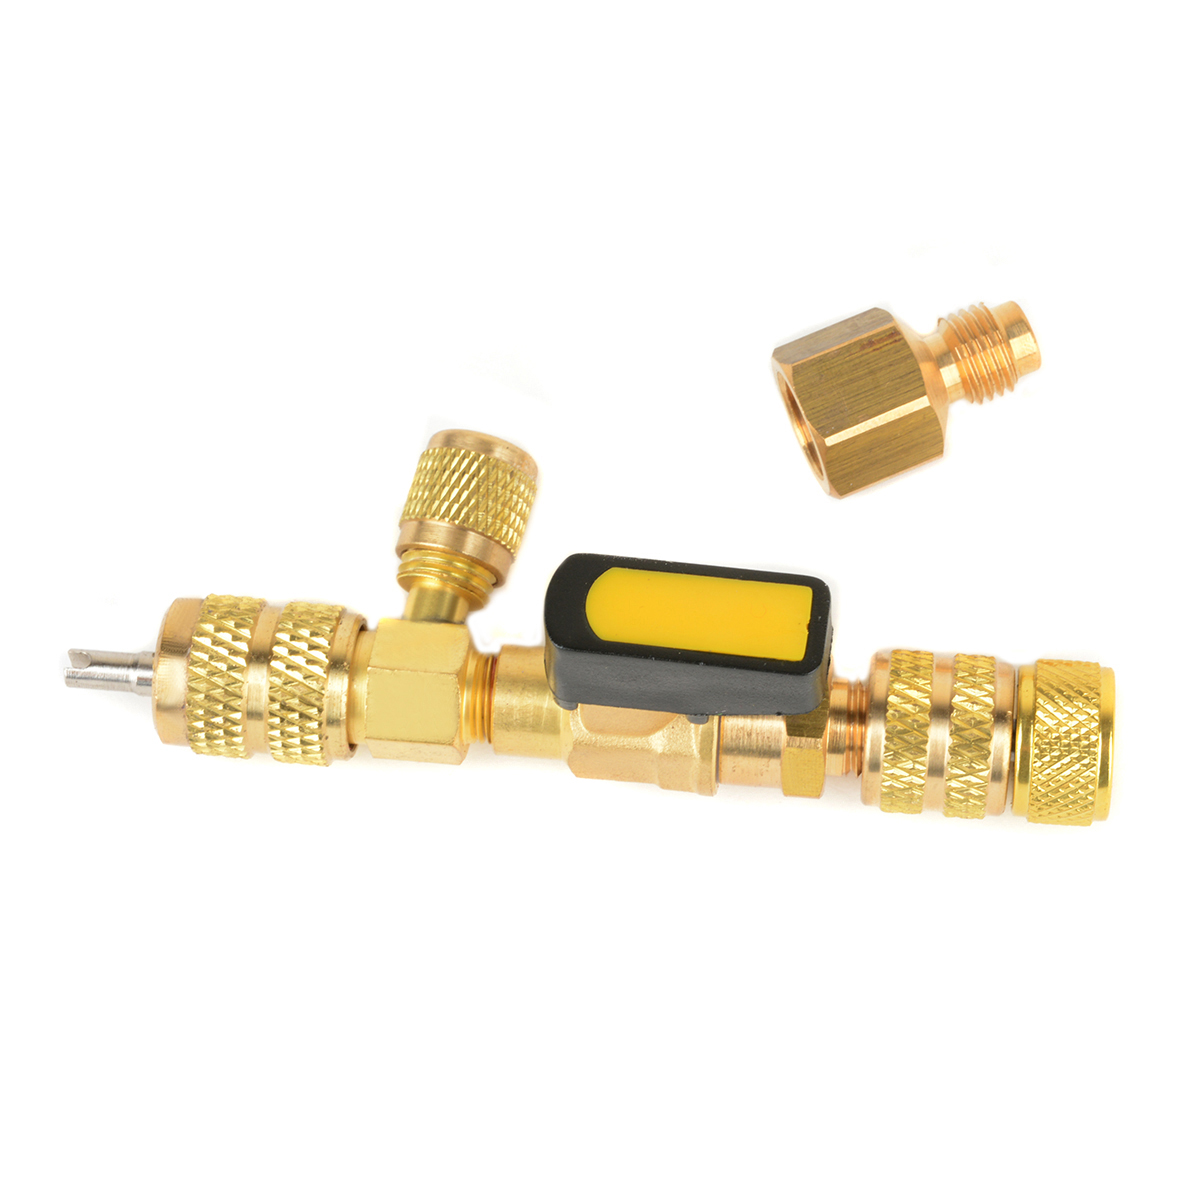 1 Set 1/4 5/16 Valve Core Remover Installer Remove Tool With Ball Valve for Air Conditioning R22 R410A R404A R407C Mayitr hs 1221 hs 1222 r410a refrigeration charging adapter refrigerant retention control valve air conditioning charging valve